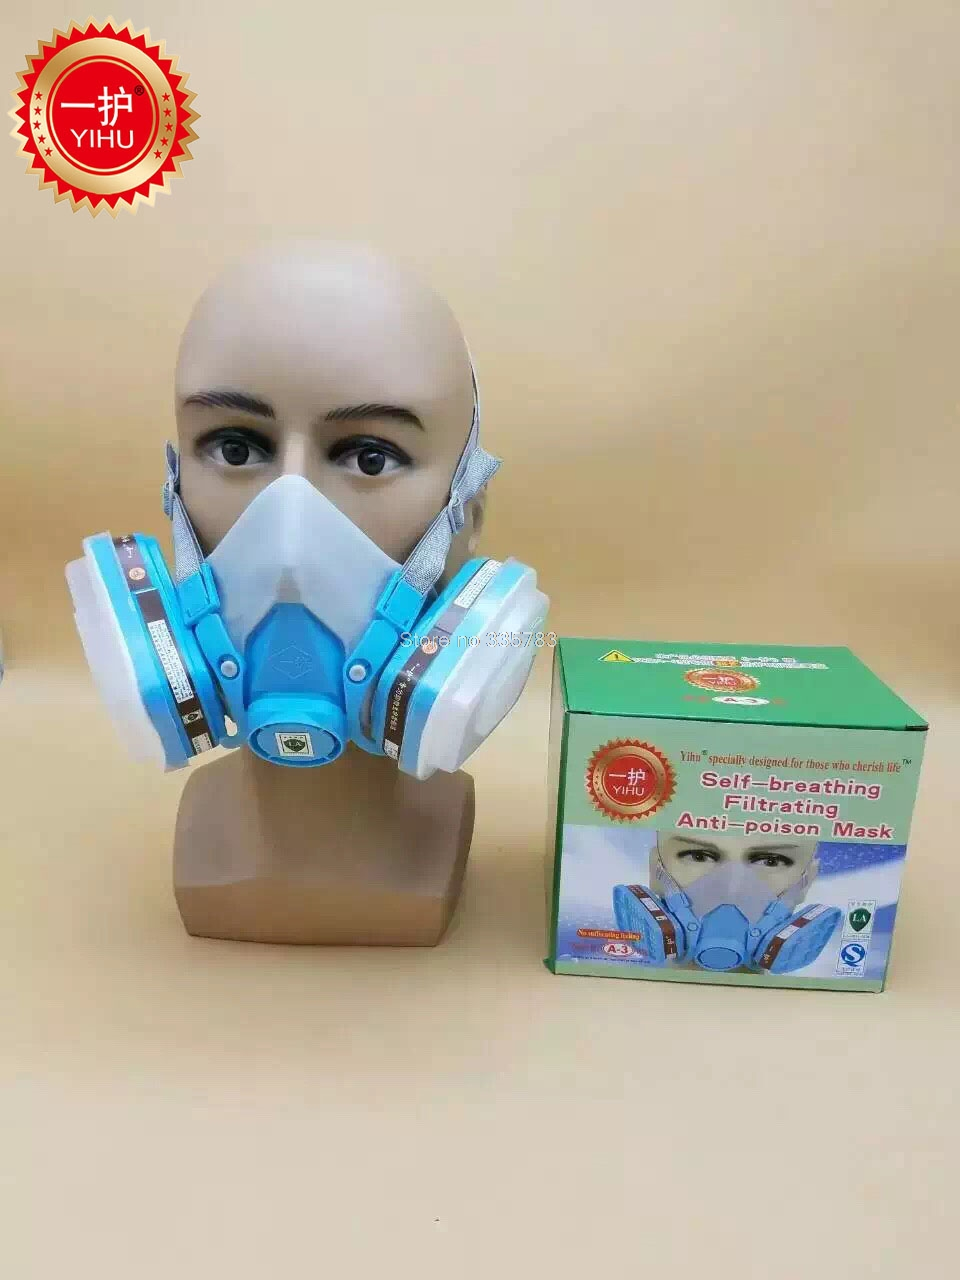 YIHU respirator gas mask Silica gel green protective mask pesticides paint industrial safety respirator face mask yihu gas mask blue two pot efficient respirator gas mask paint spray pesticides industrial safety protective mask